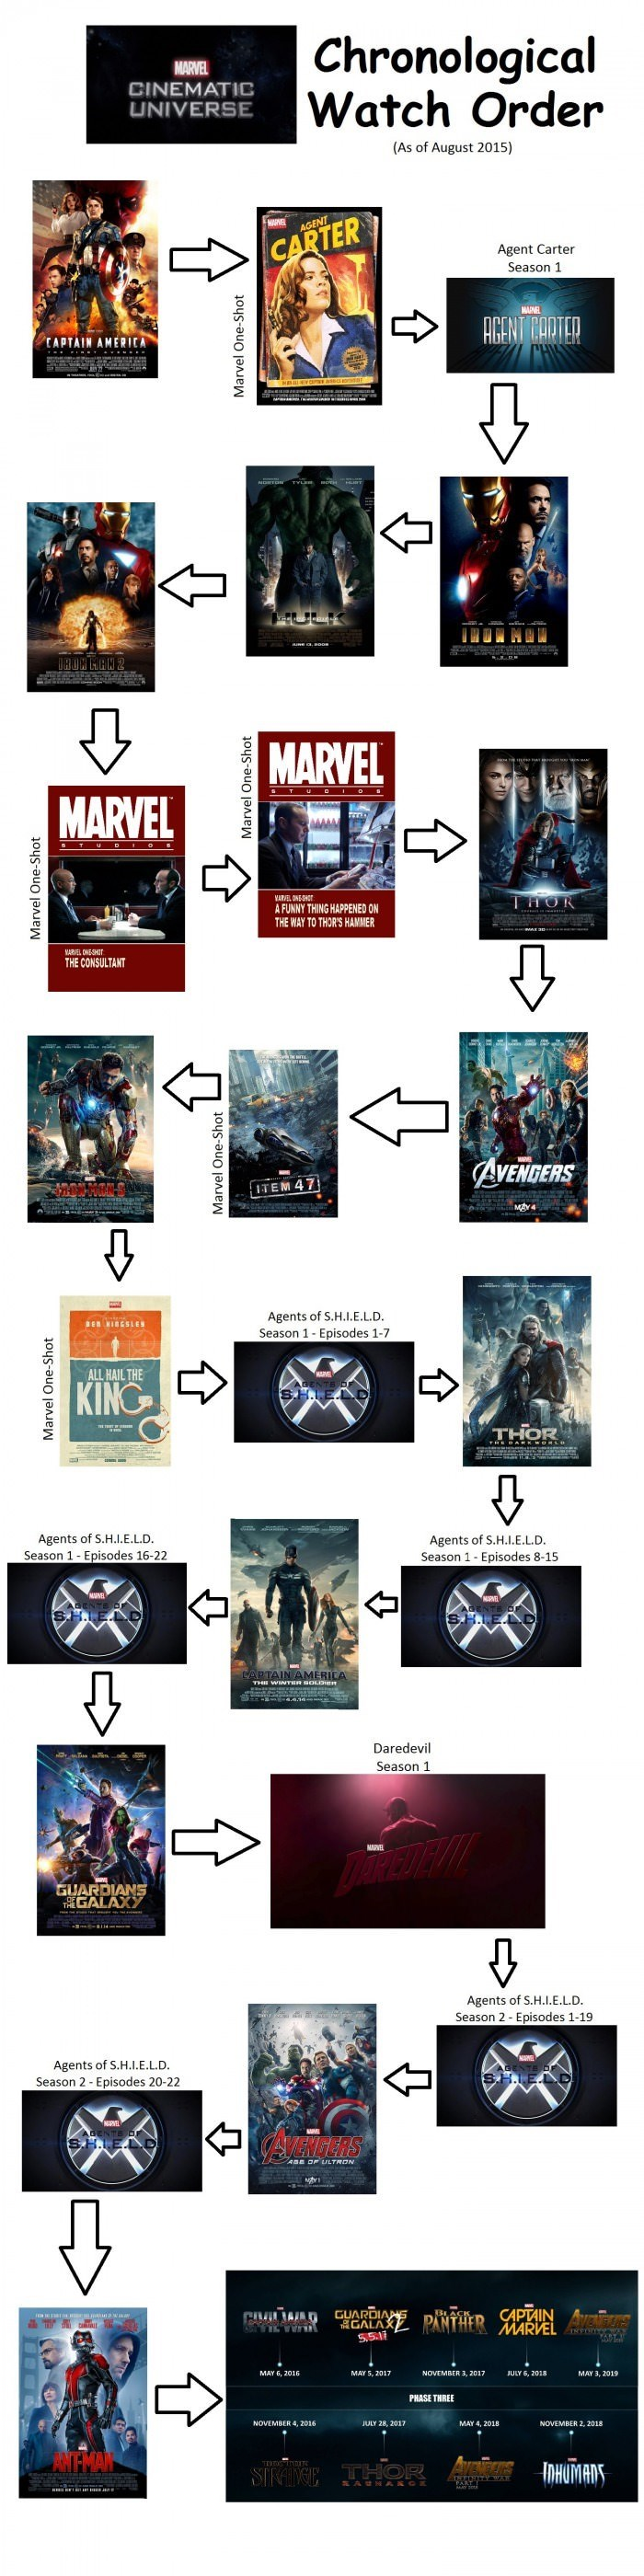 Marvel in Chronological Order